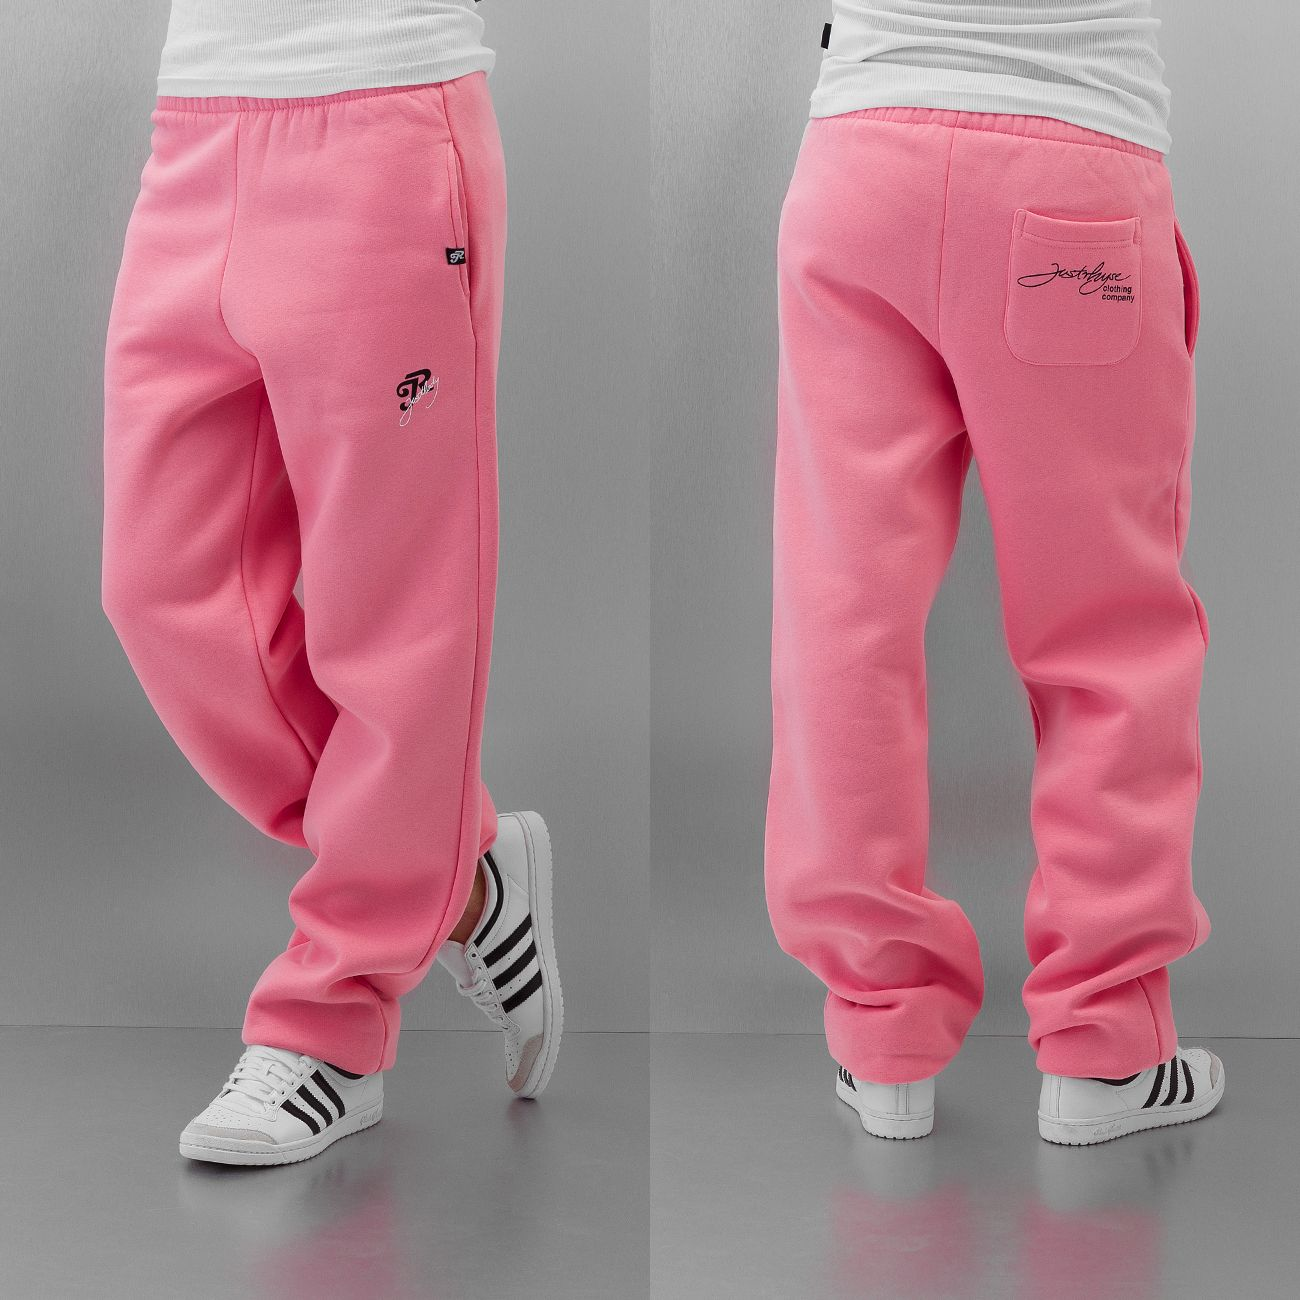 nike jogginghose rosa nike advance 15 pant hose lang damen. Black Bedroom Furniture Sets. Home Design Ideas